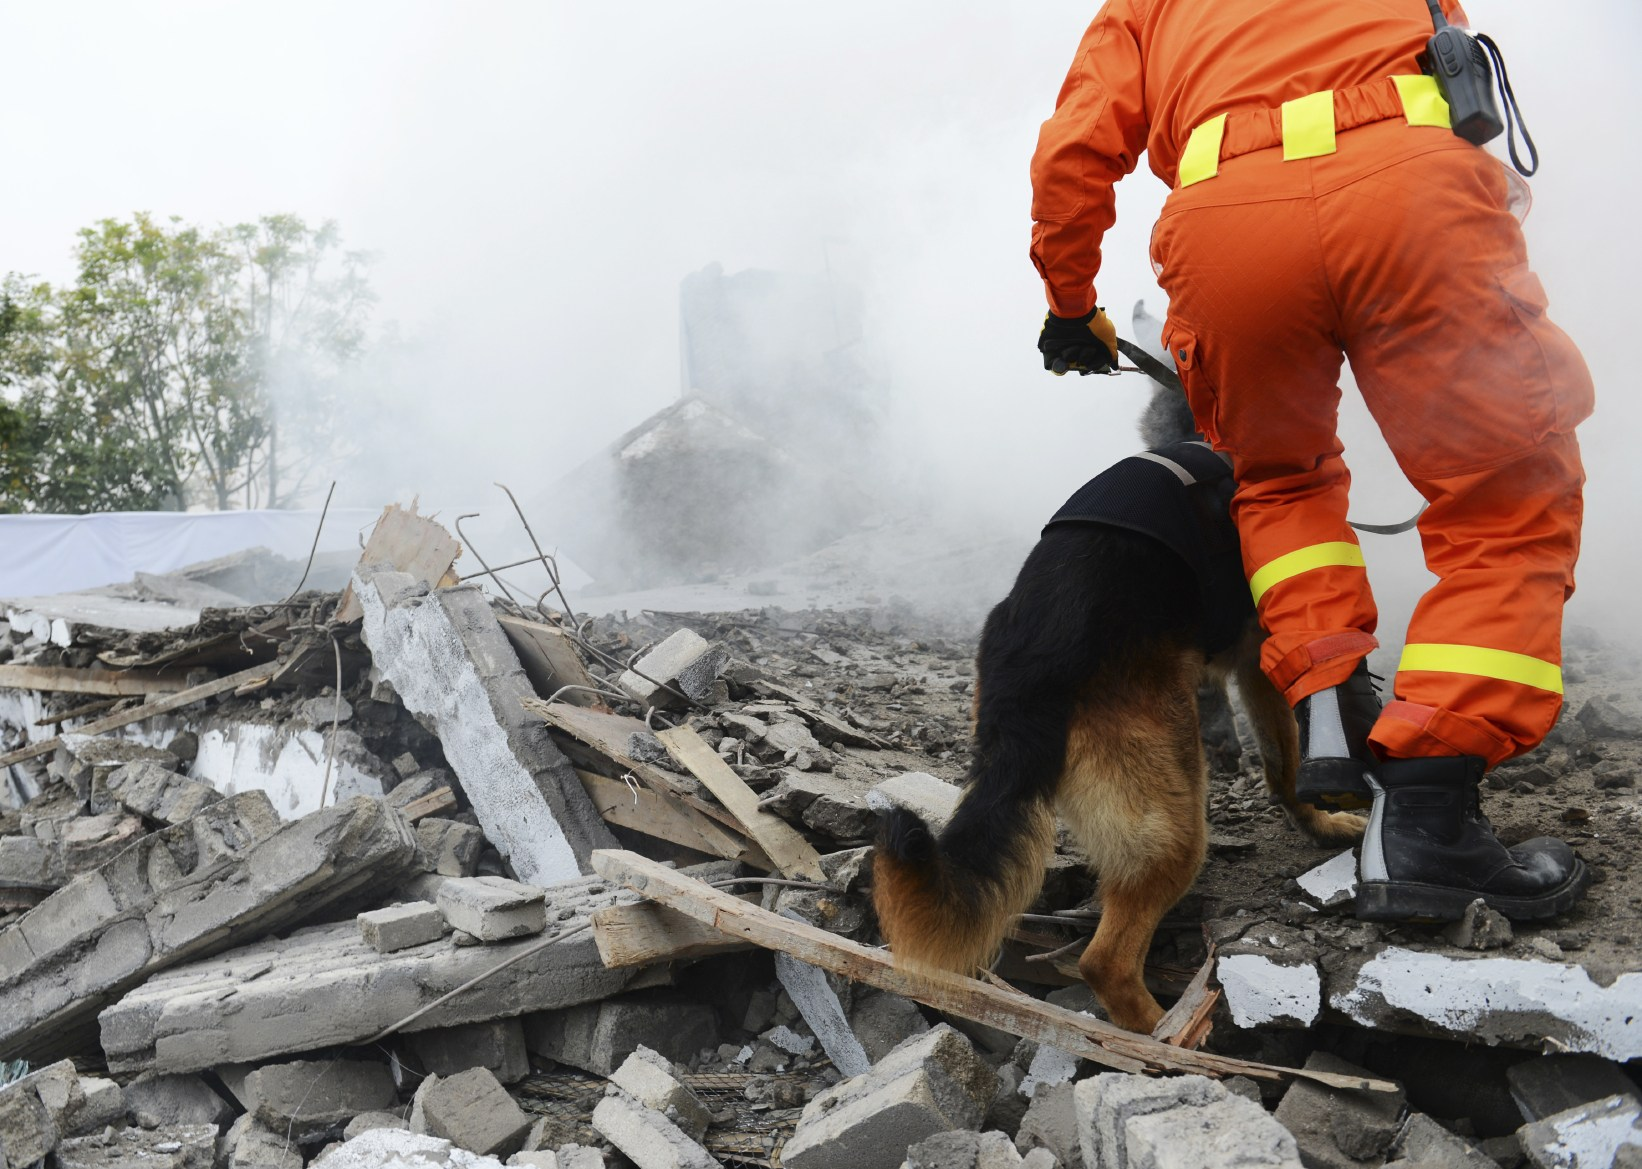 The earthquake in Japan had a magnitude of 9.0 and killed over 15000 people on March 11, 2011.